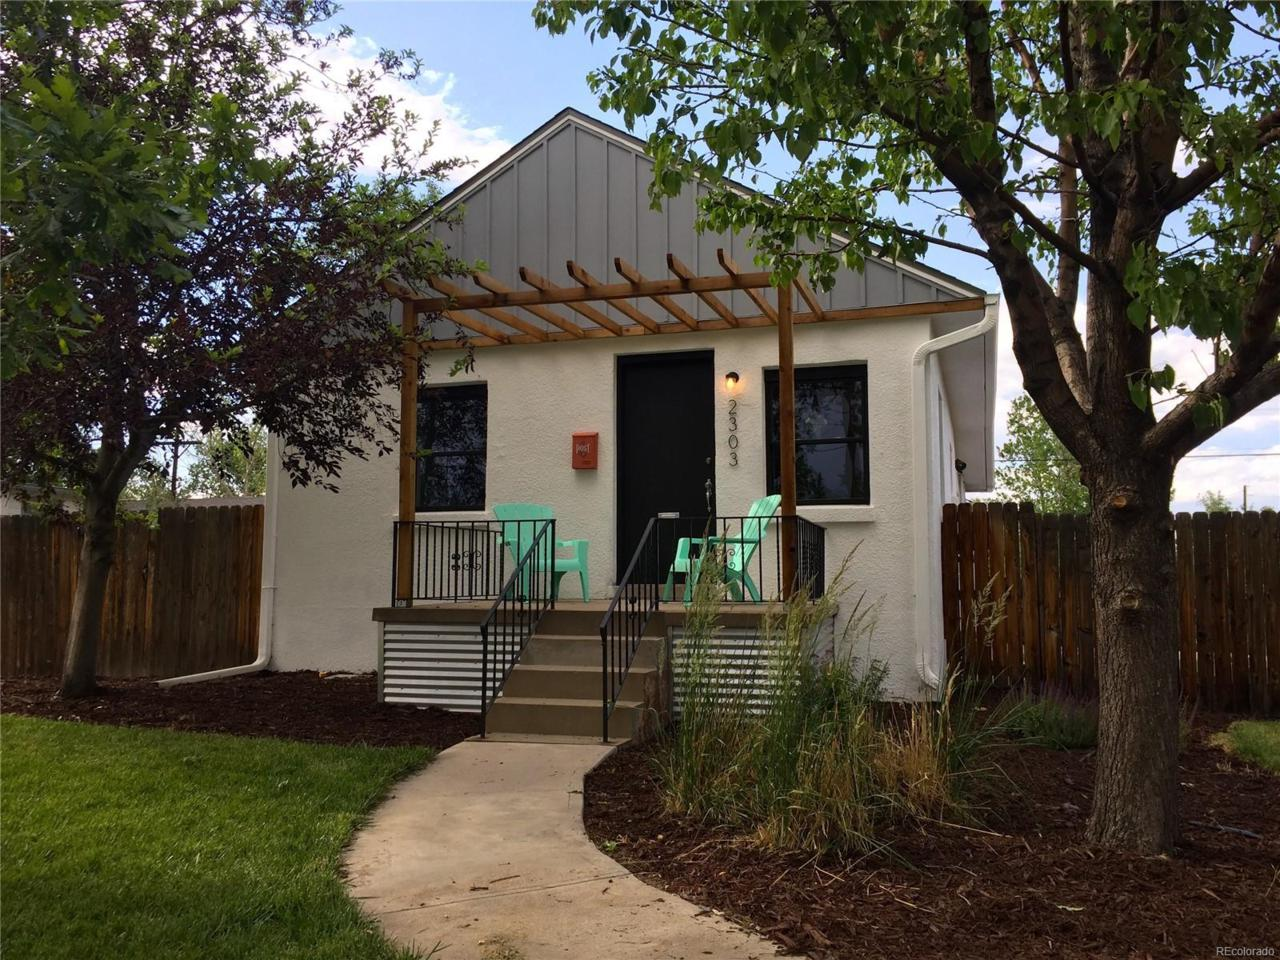 2303 W 46th Avenue, Denver, CO 80211 (MLS #7744041) :: 8z Real Estate